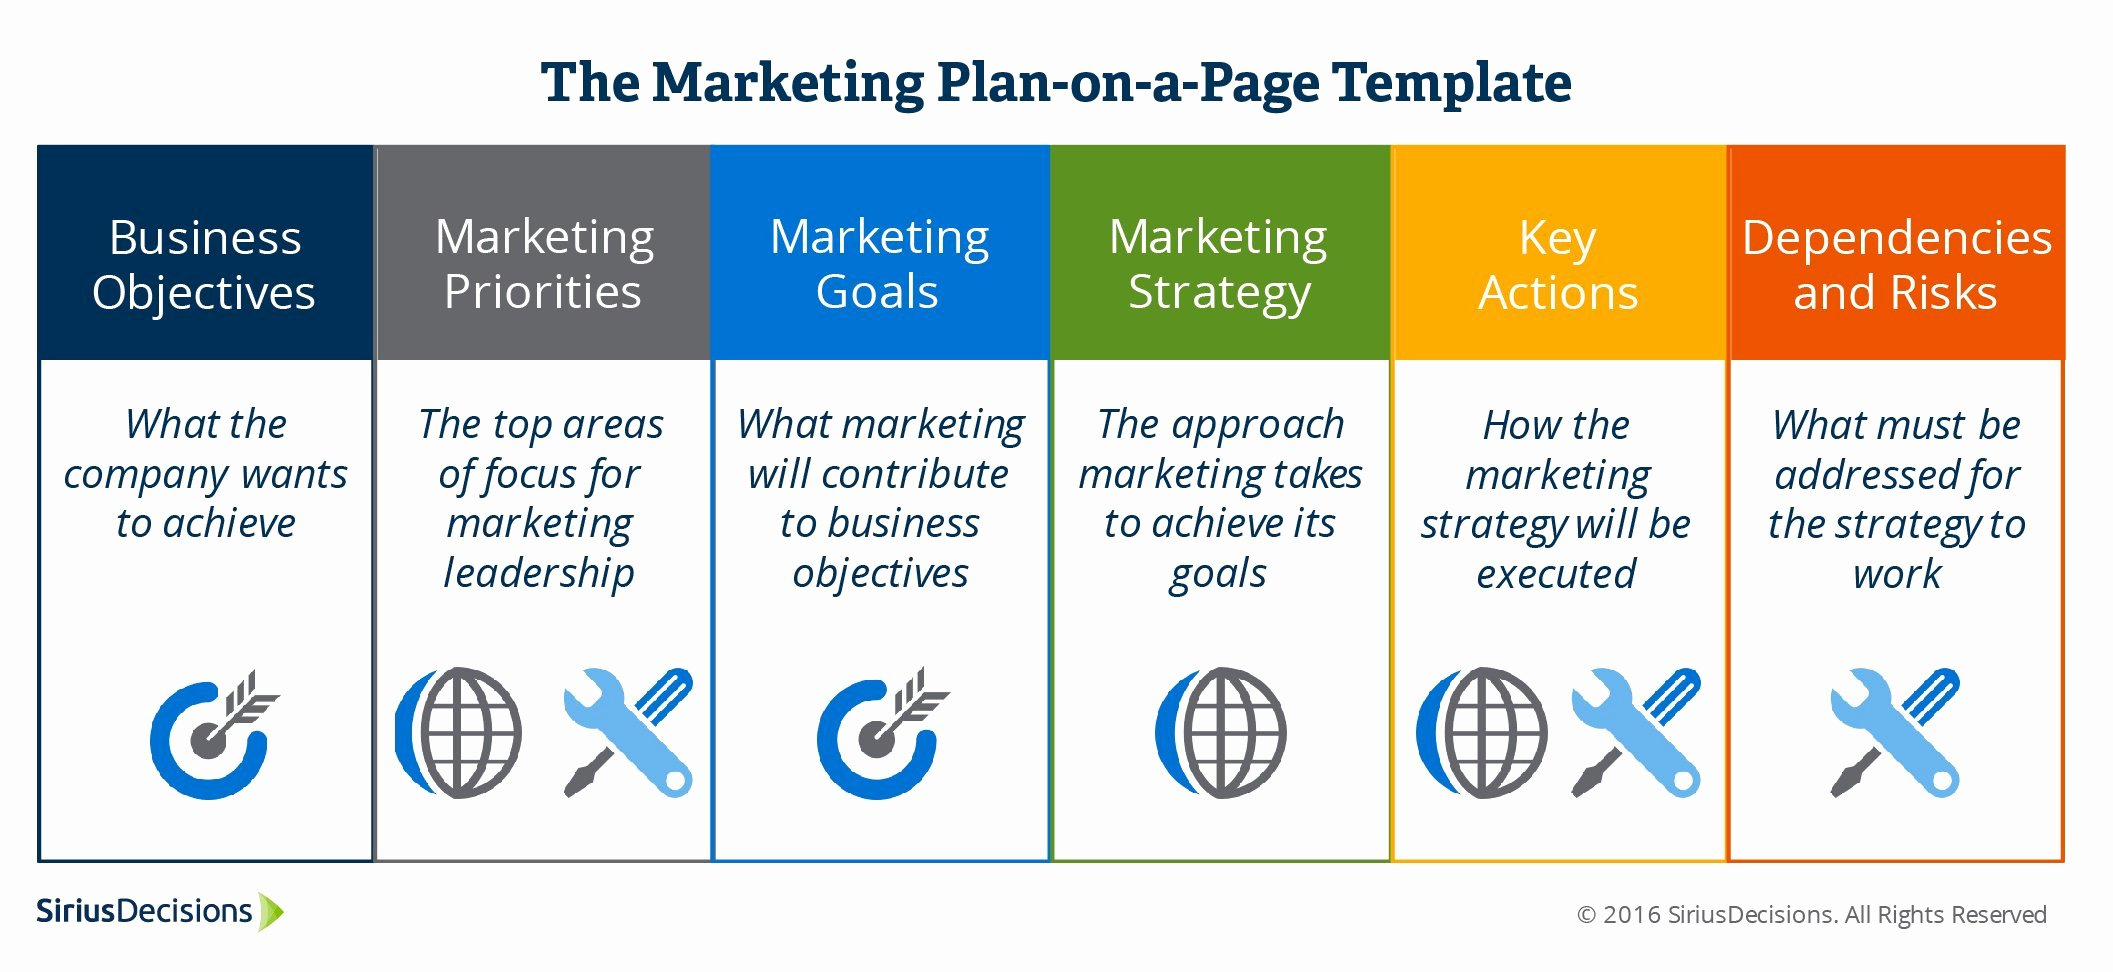 B2b Marketing Plan Template Awesome Six Actionable Steps to Build A Strategic Marketing Plan